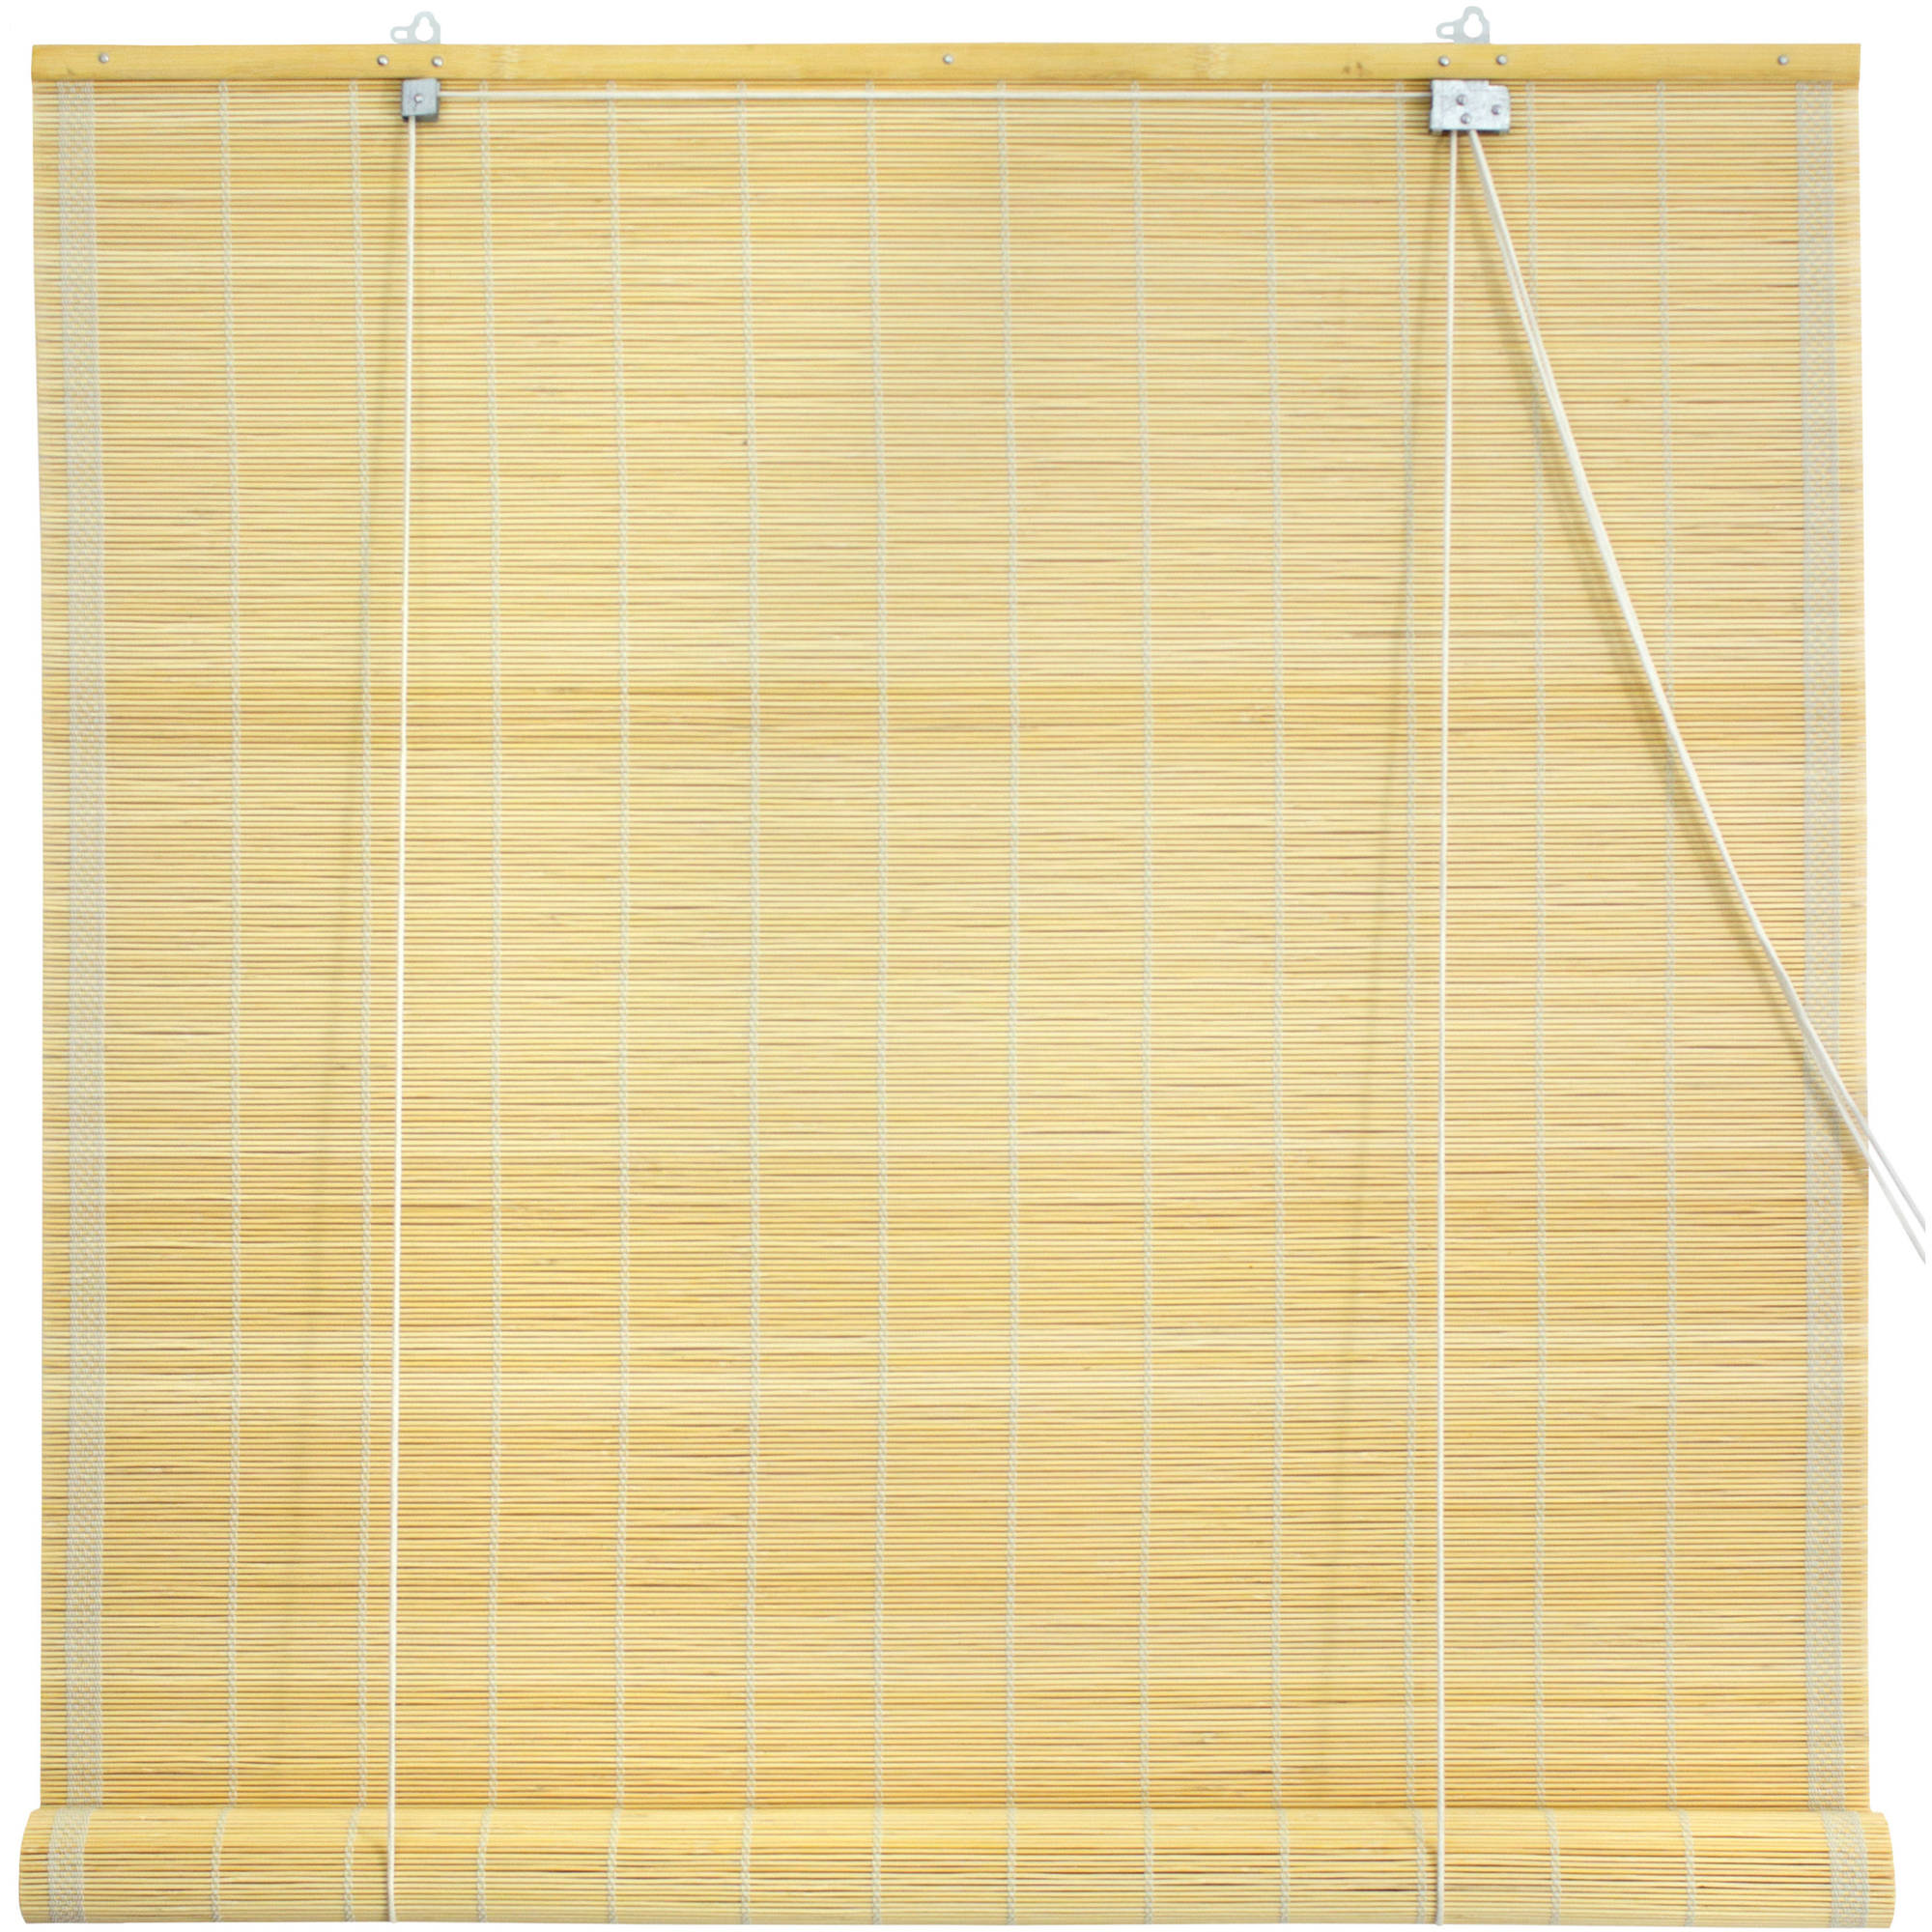 wood blinds roll curtains blind nz caprice indoor up roller bamboo